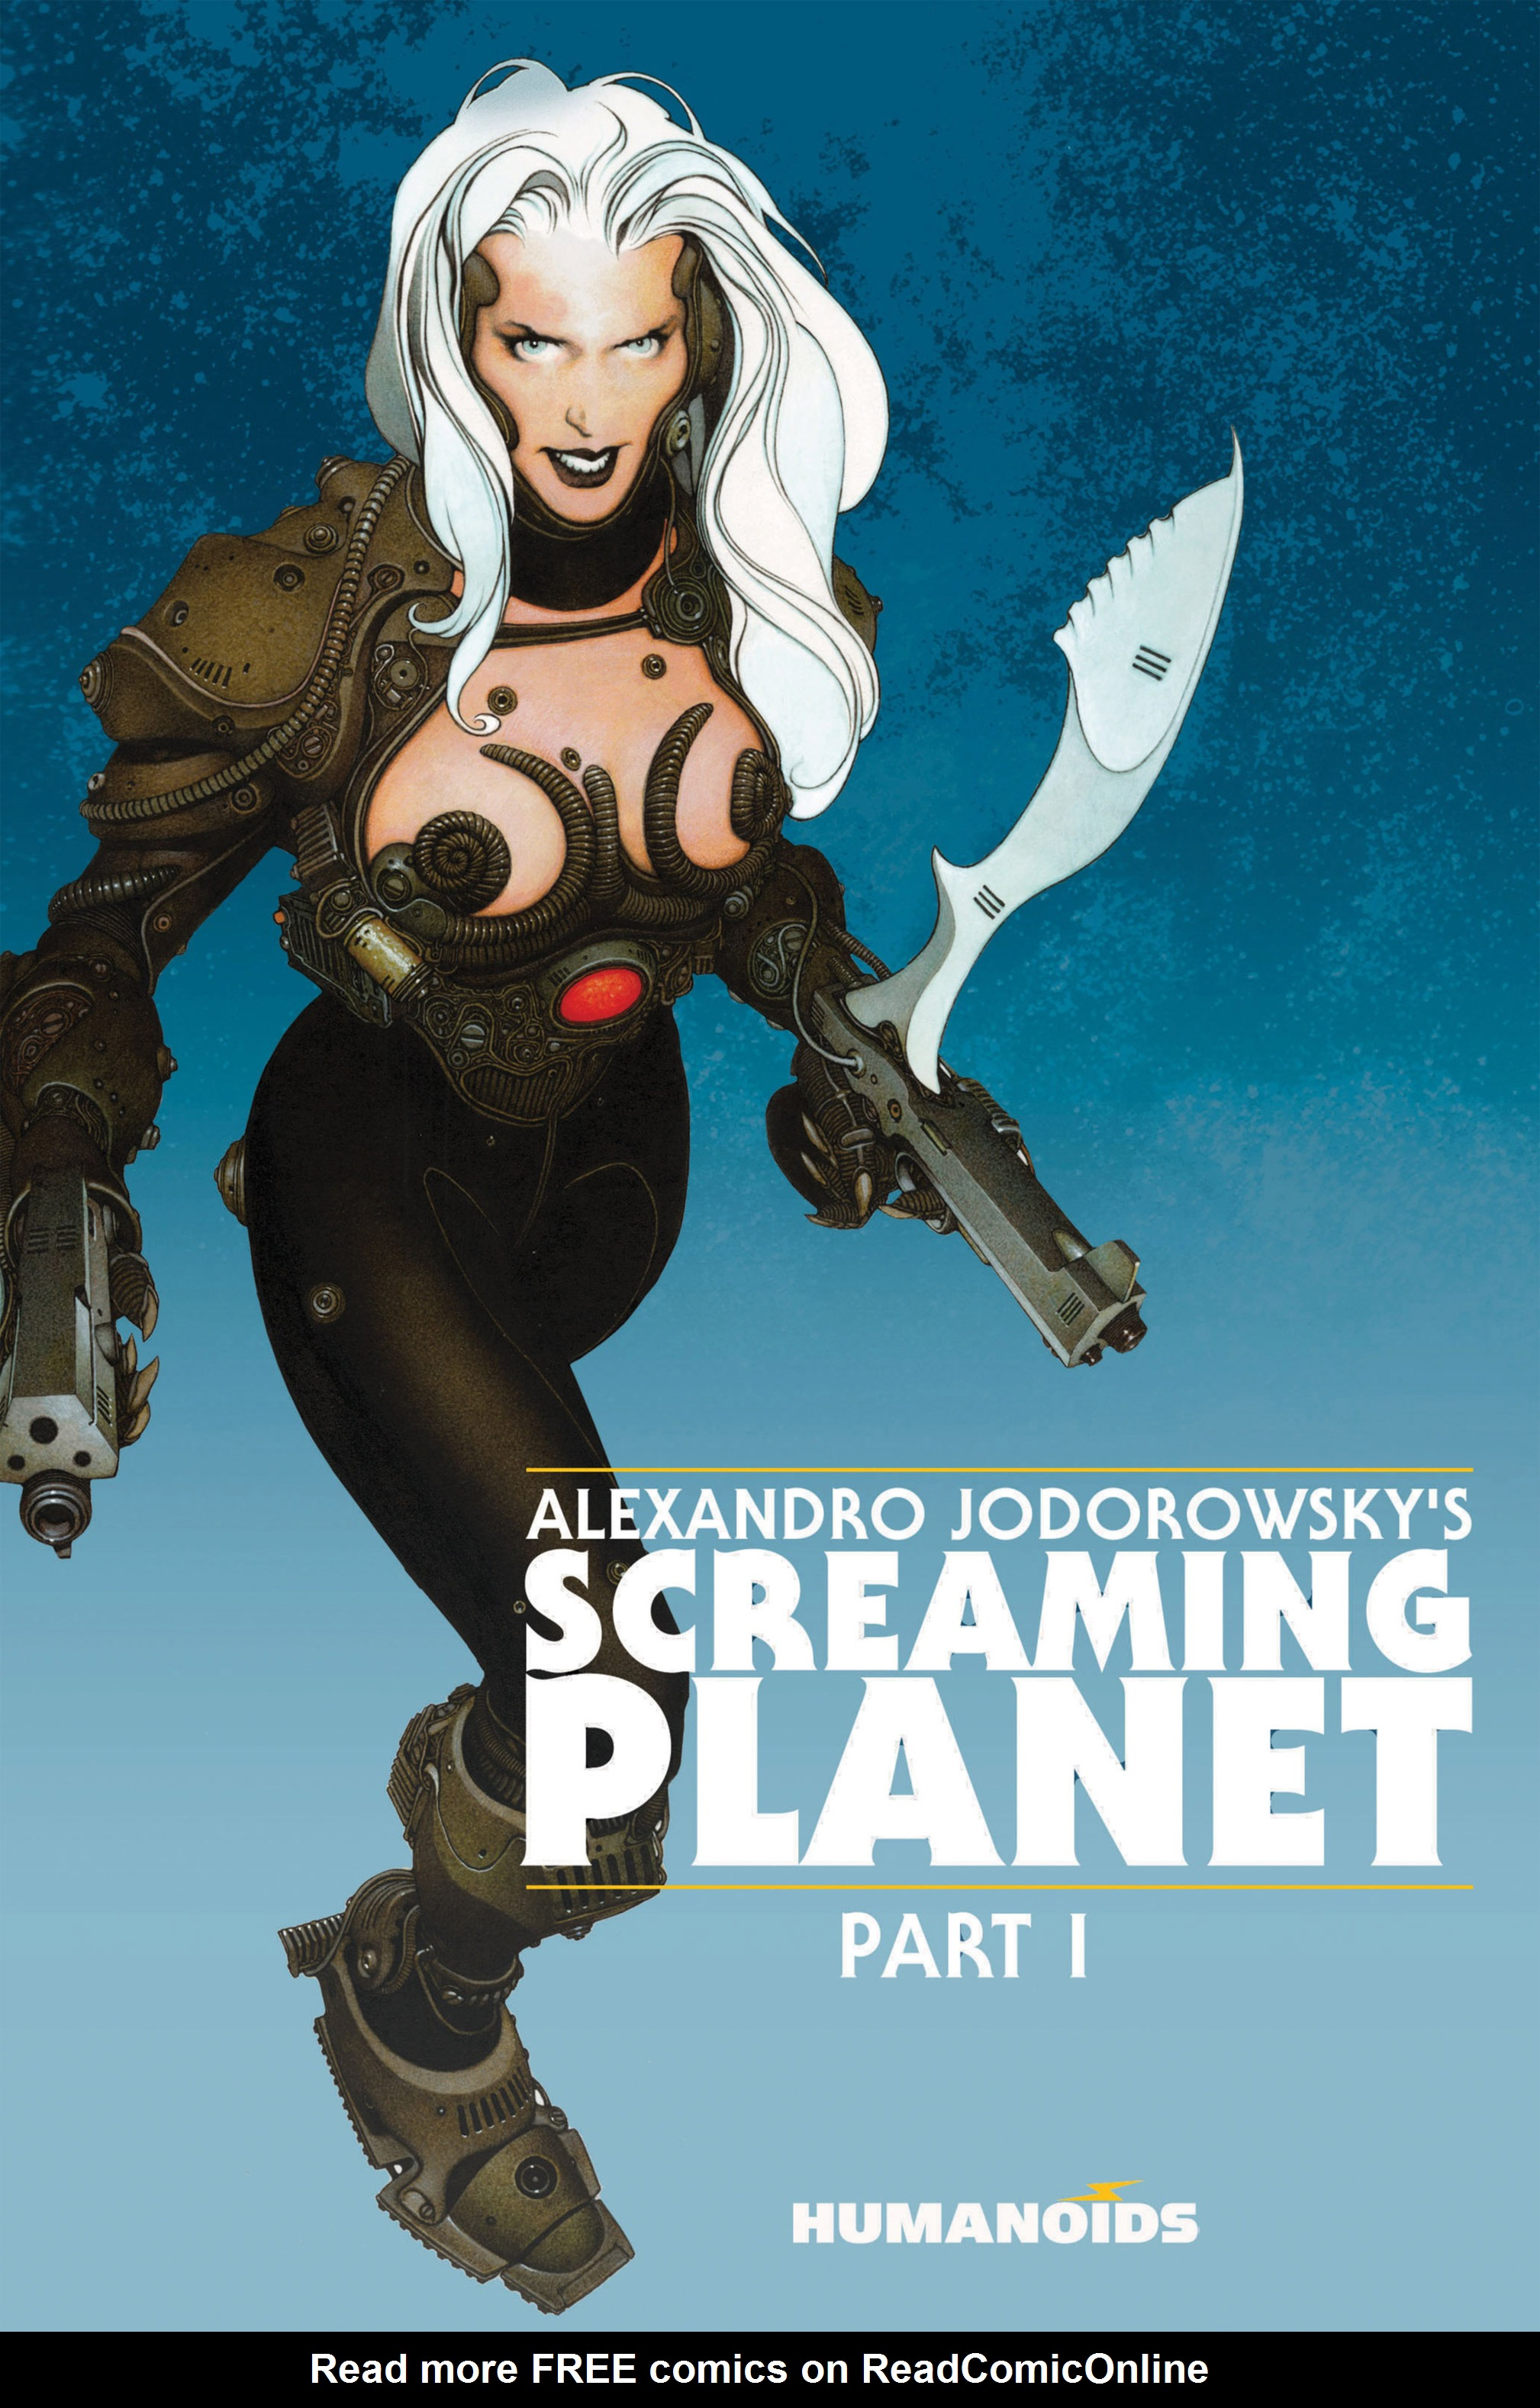 Read online Alejandro Jodorowsky's Screaming Planet comic -  Issue #1 - 1